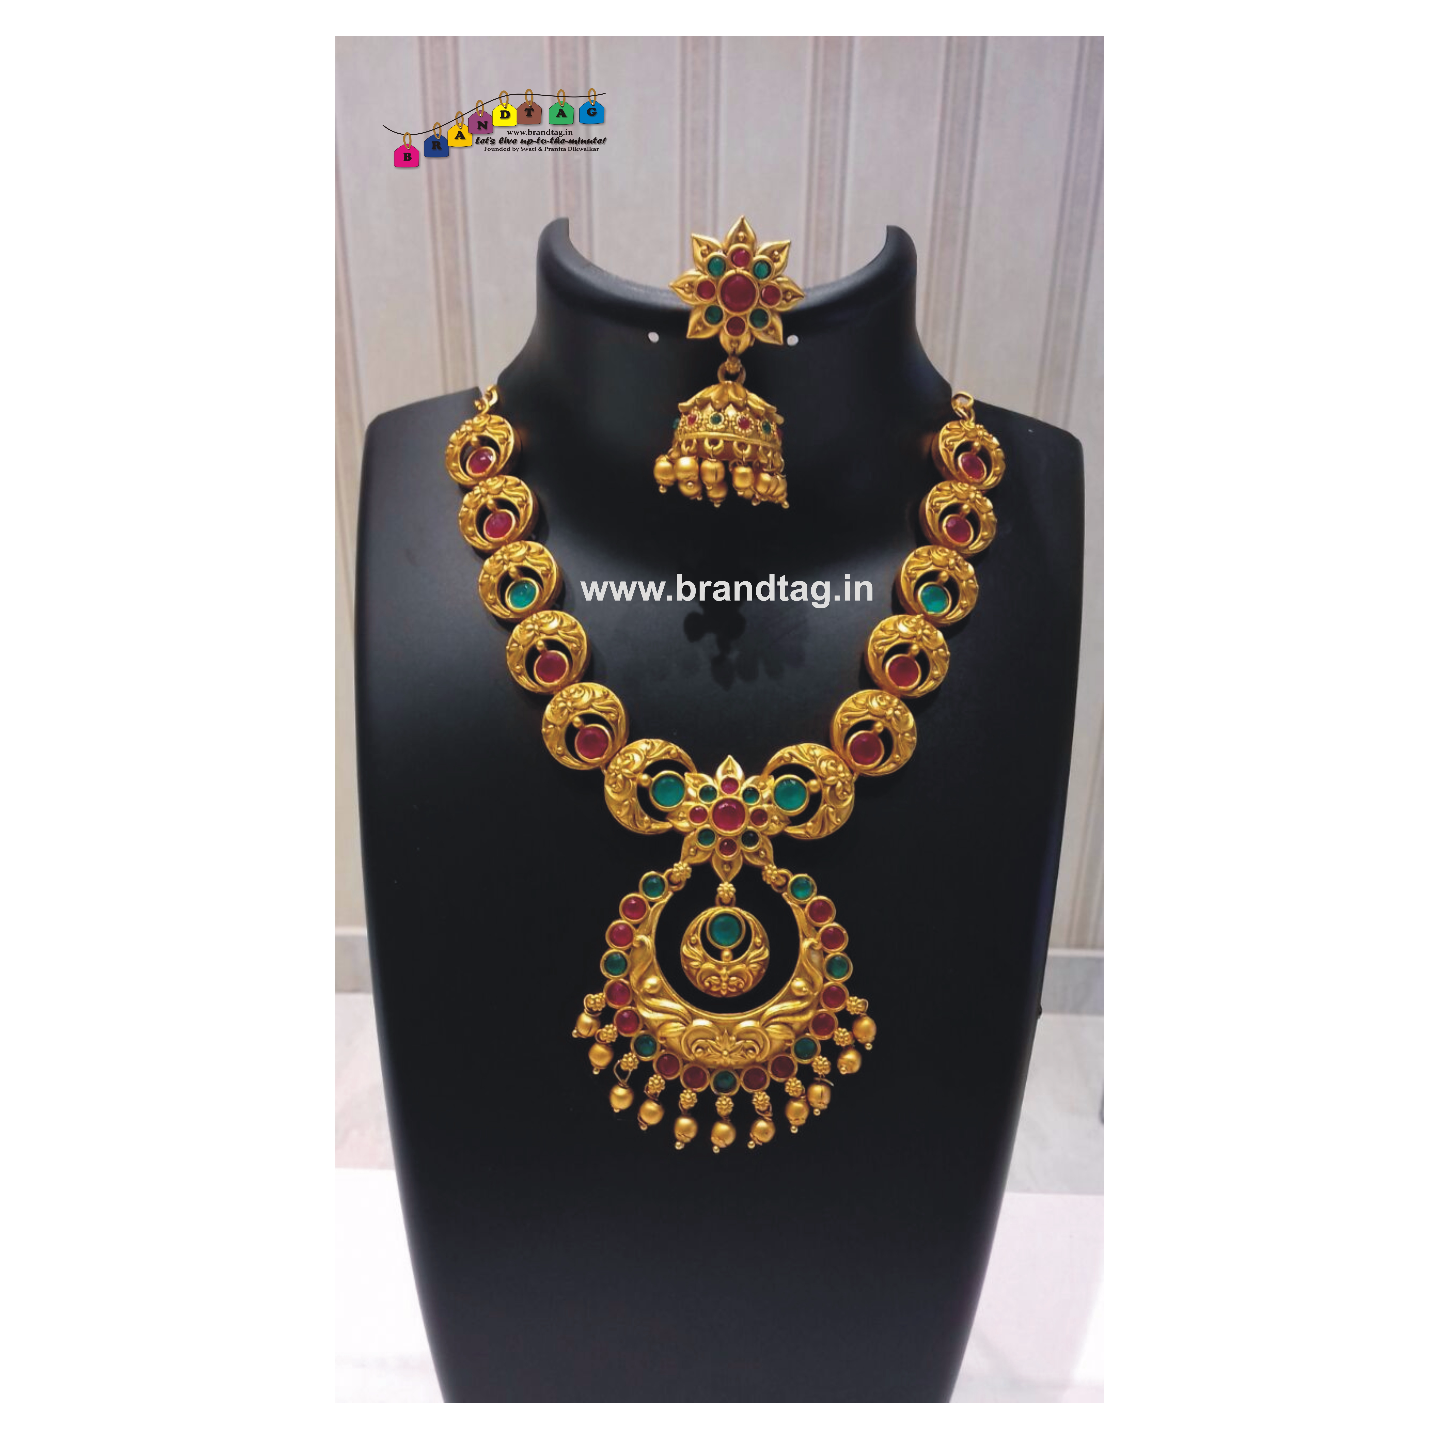 Diwali Collection - Eye pleasing Golden Necklace Set!